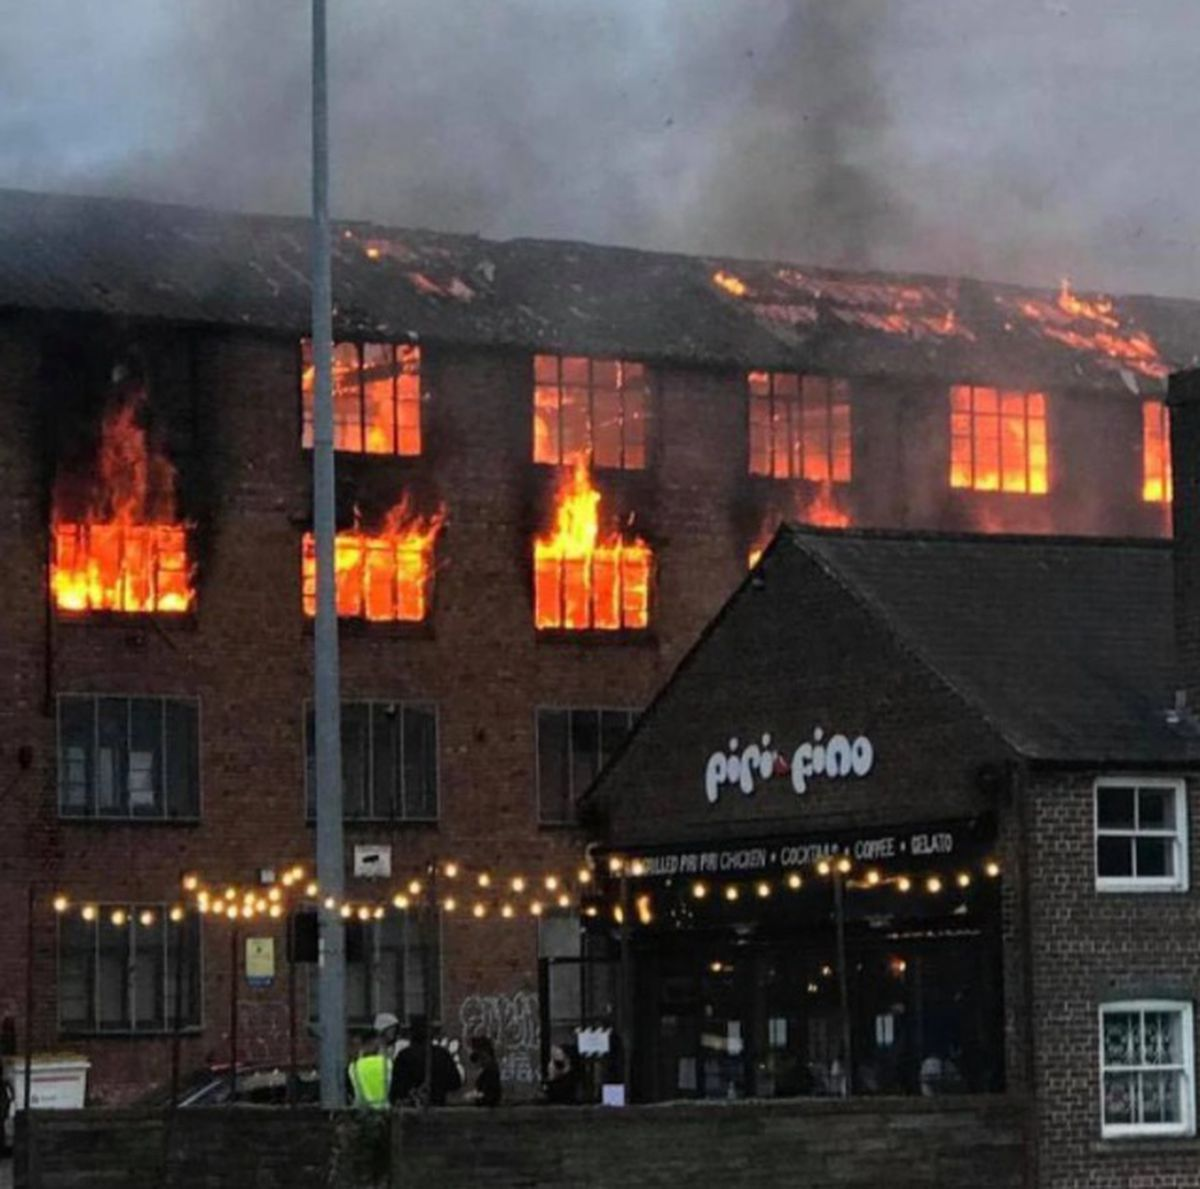 The fire in Walsall. Photo: Your Walsall